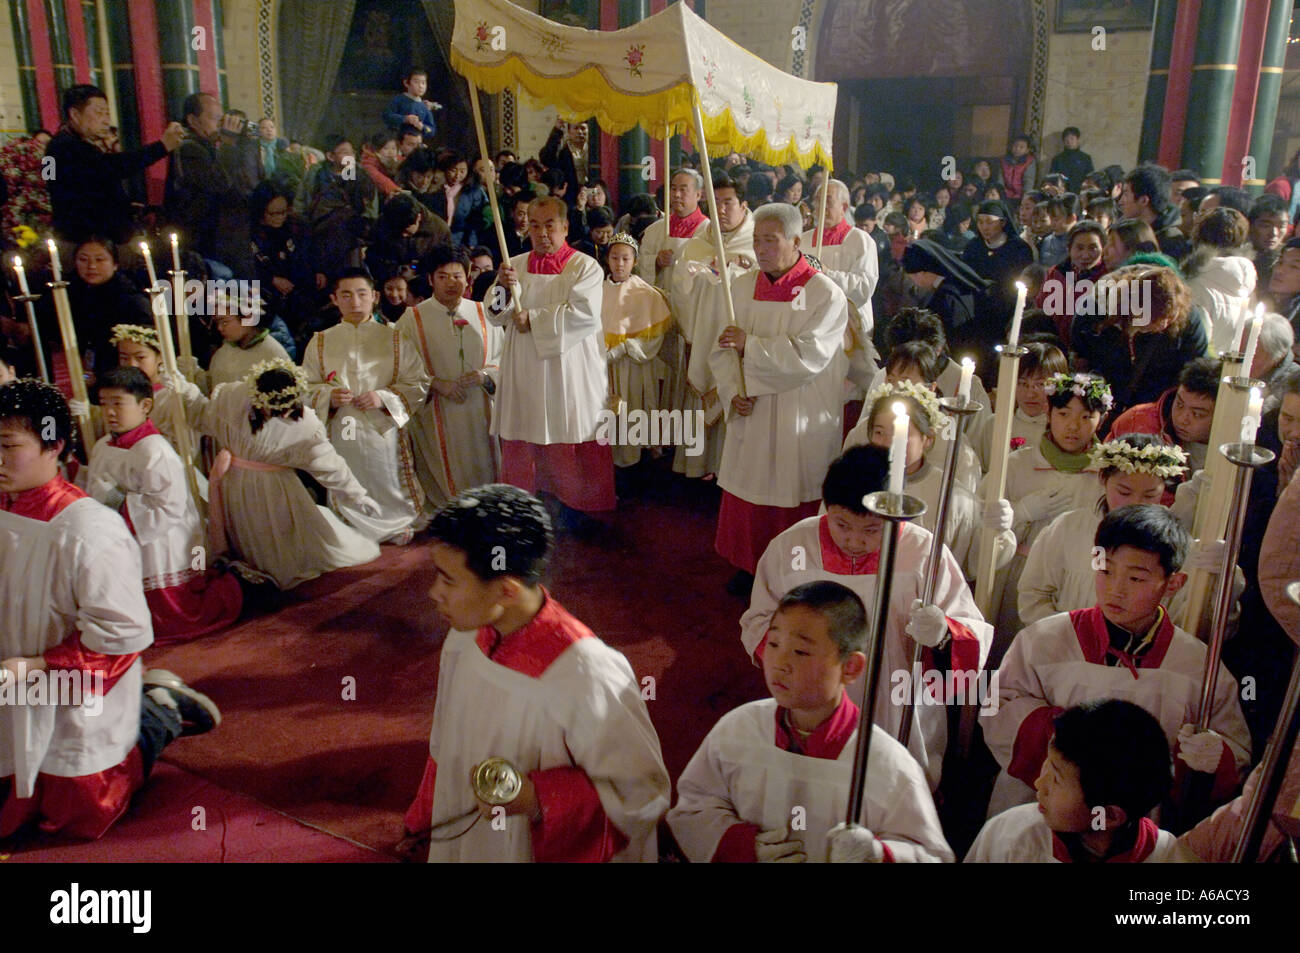 christmas mass at north cathedral xishiku in beijing china stock image - Do Catholics Celebrate Christmas